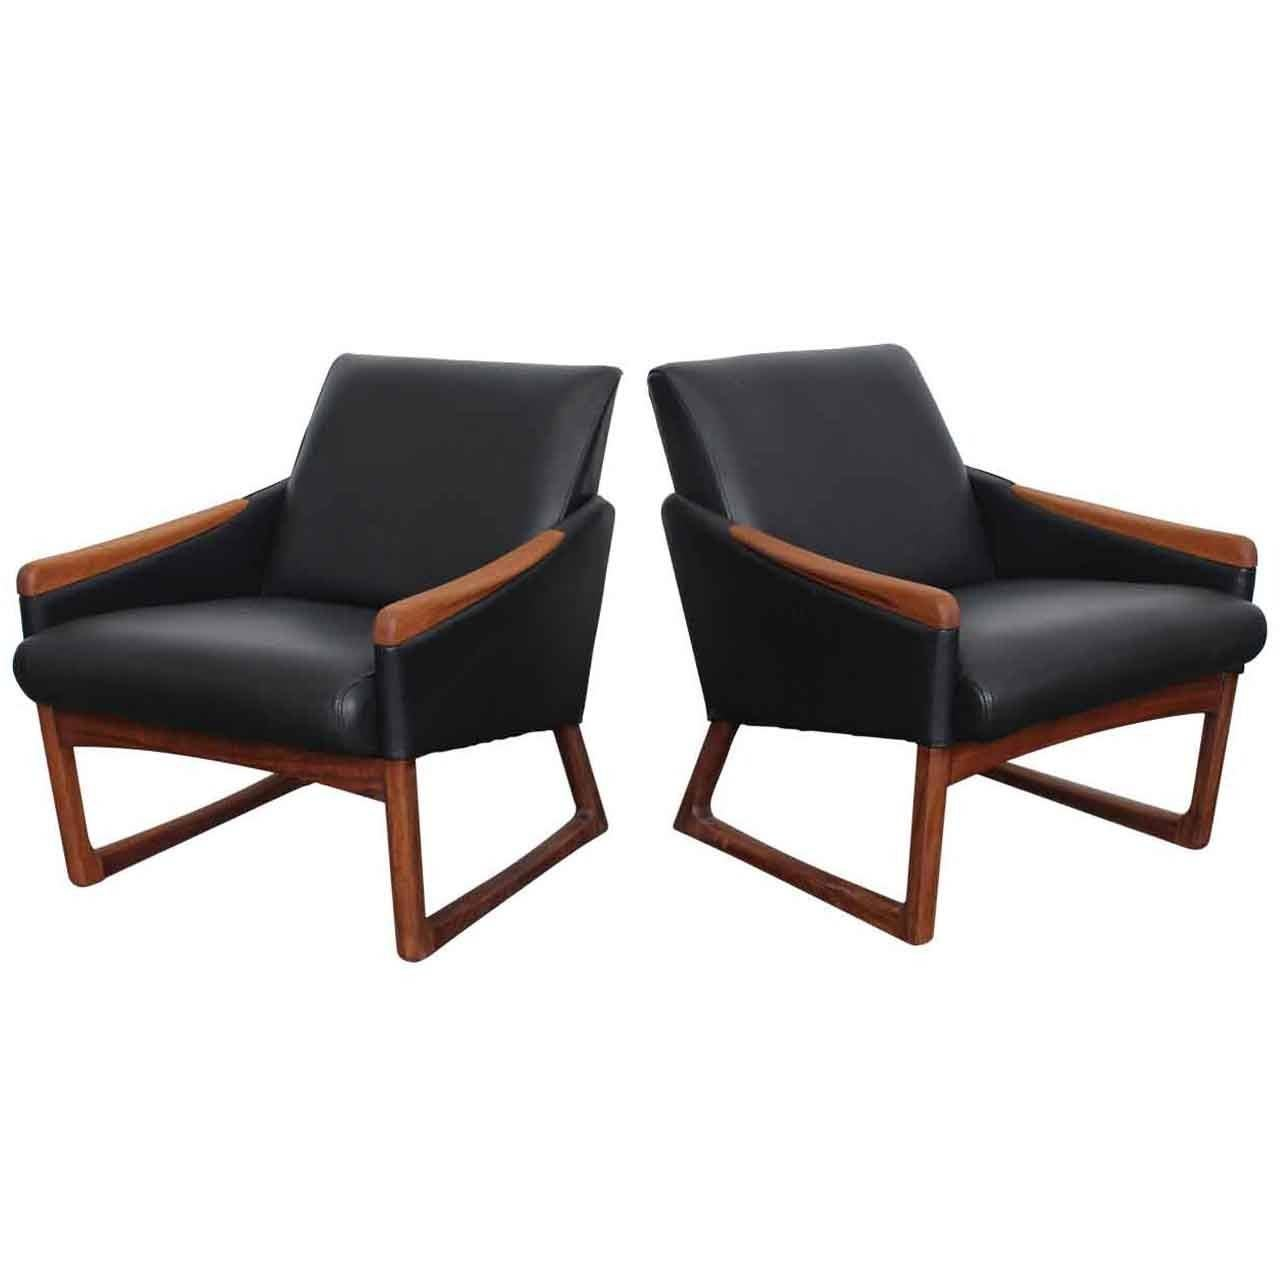 Mid century modern leather lounge chairs at 1stdibs for Mid century modern seating